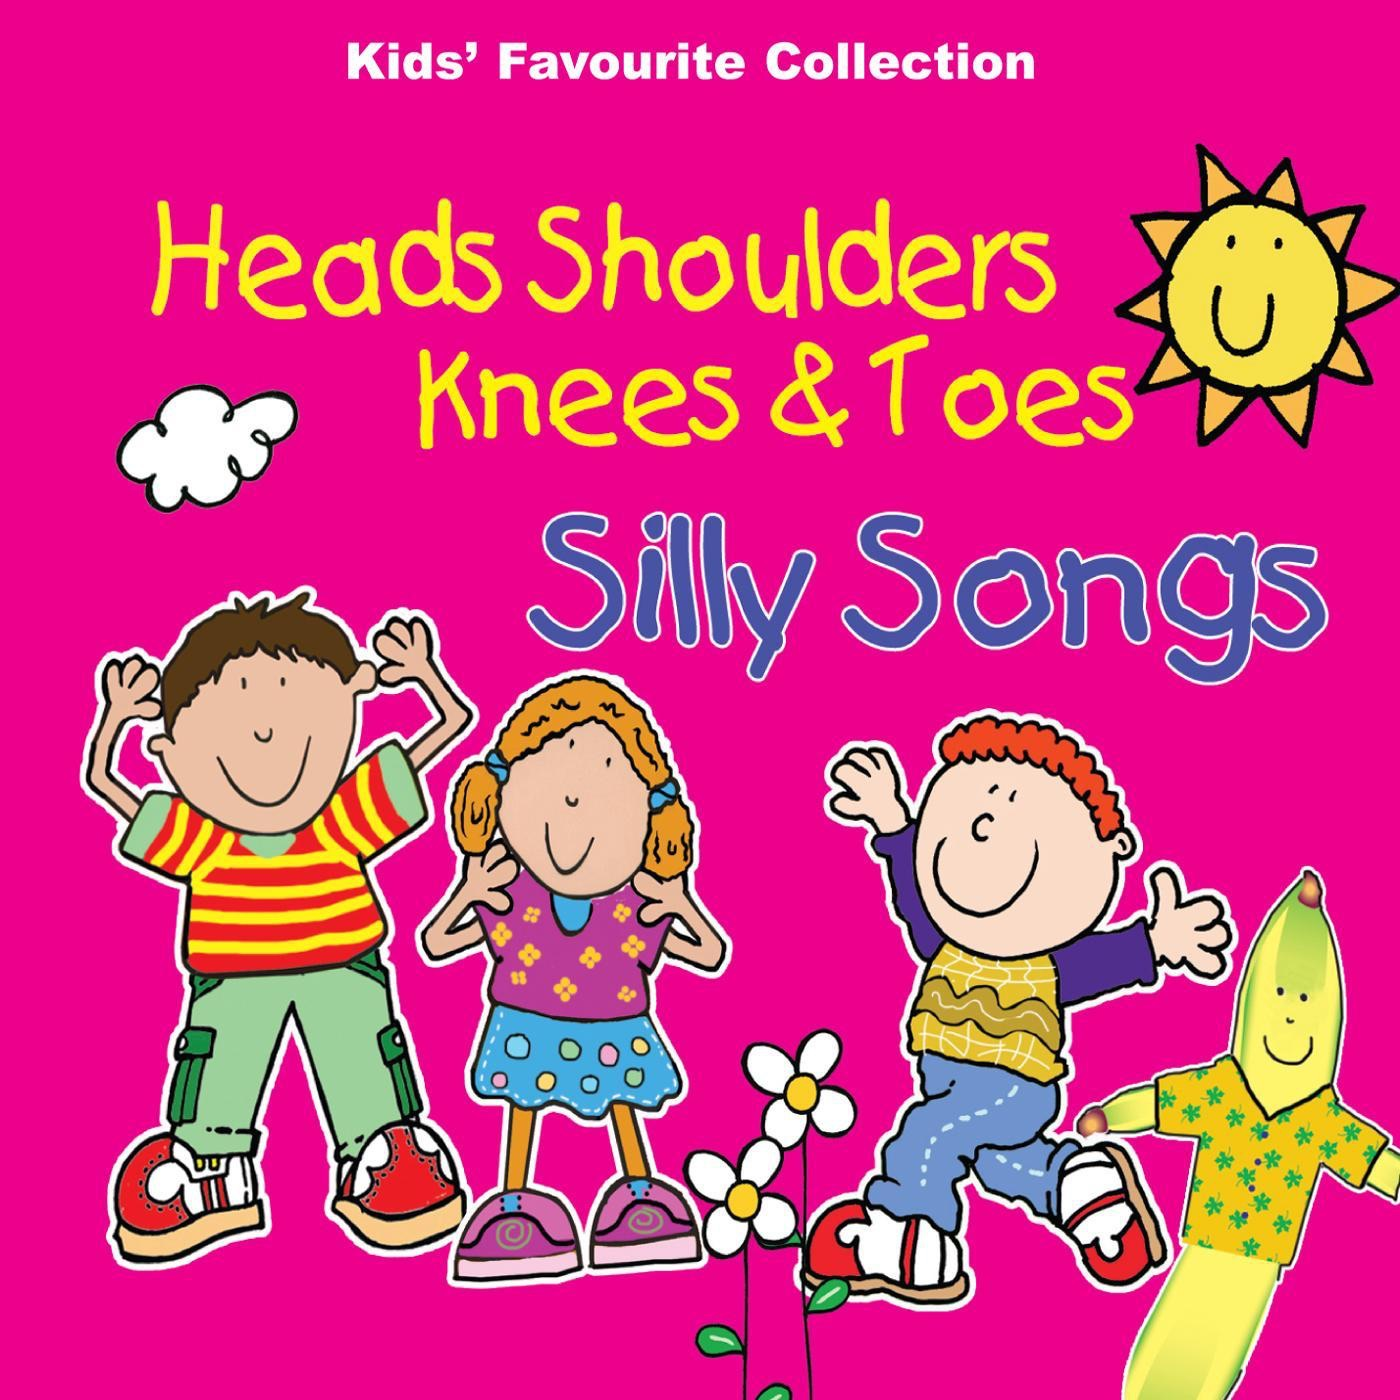 Heads, Shoulders, Knees & Toes and Silly Songs